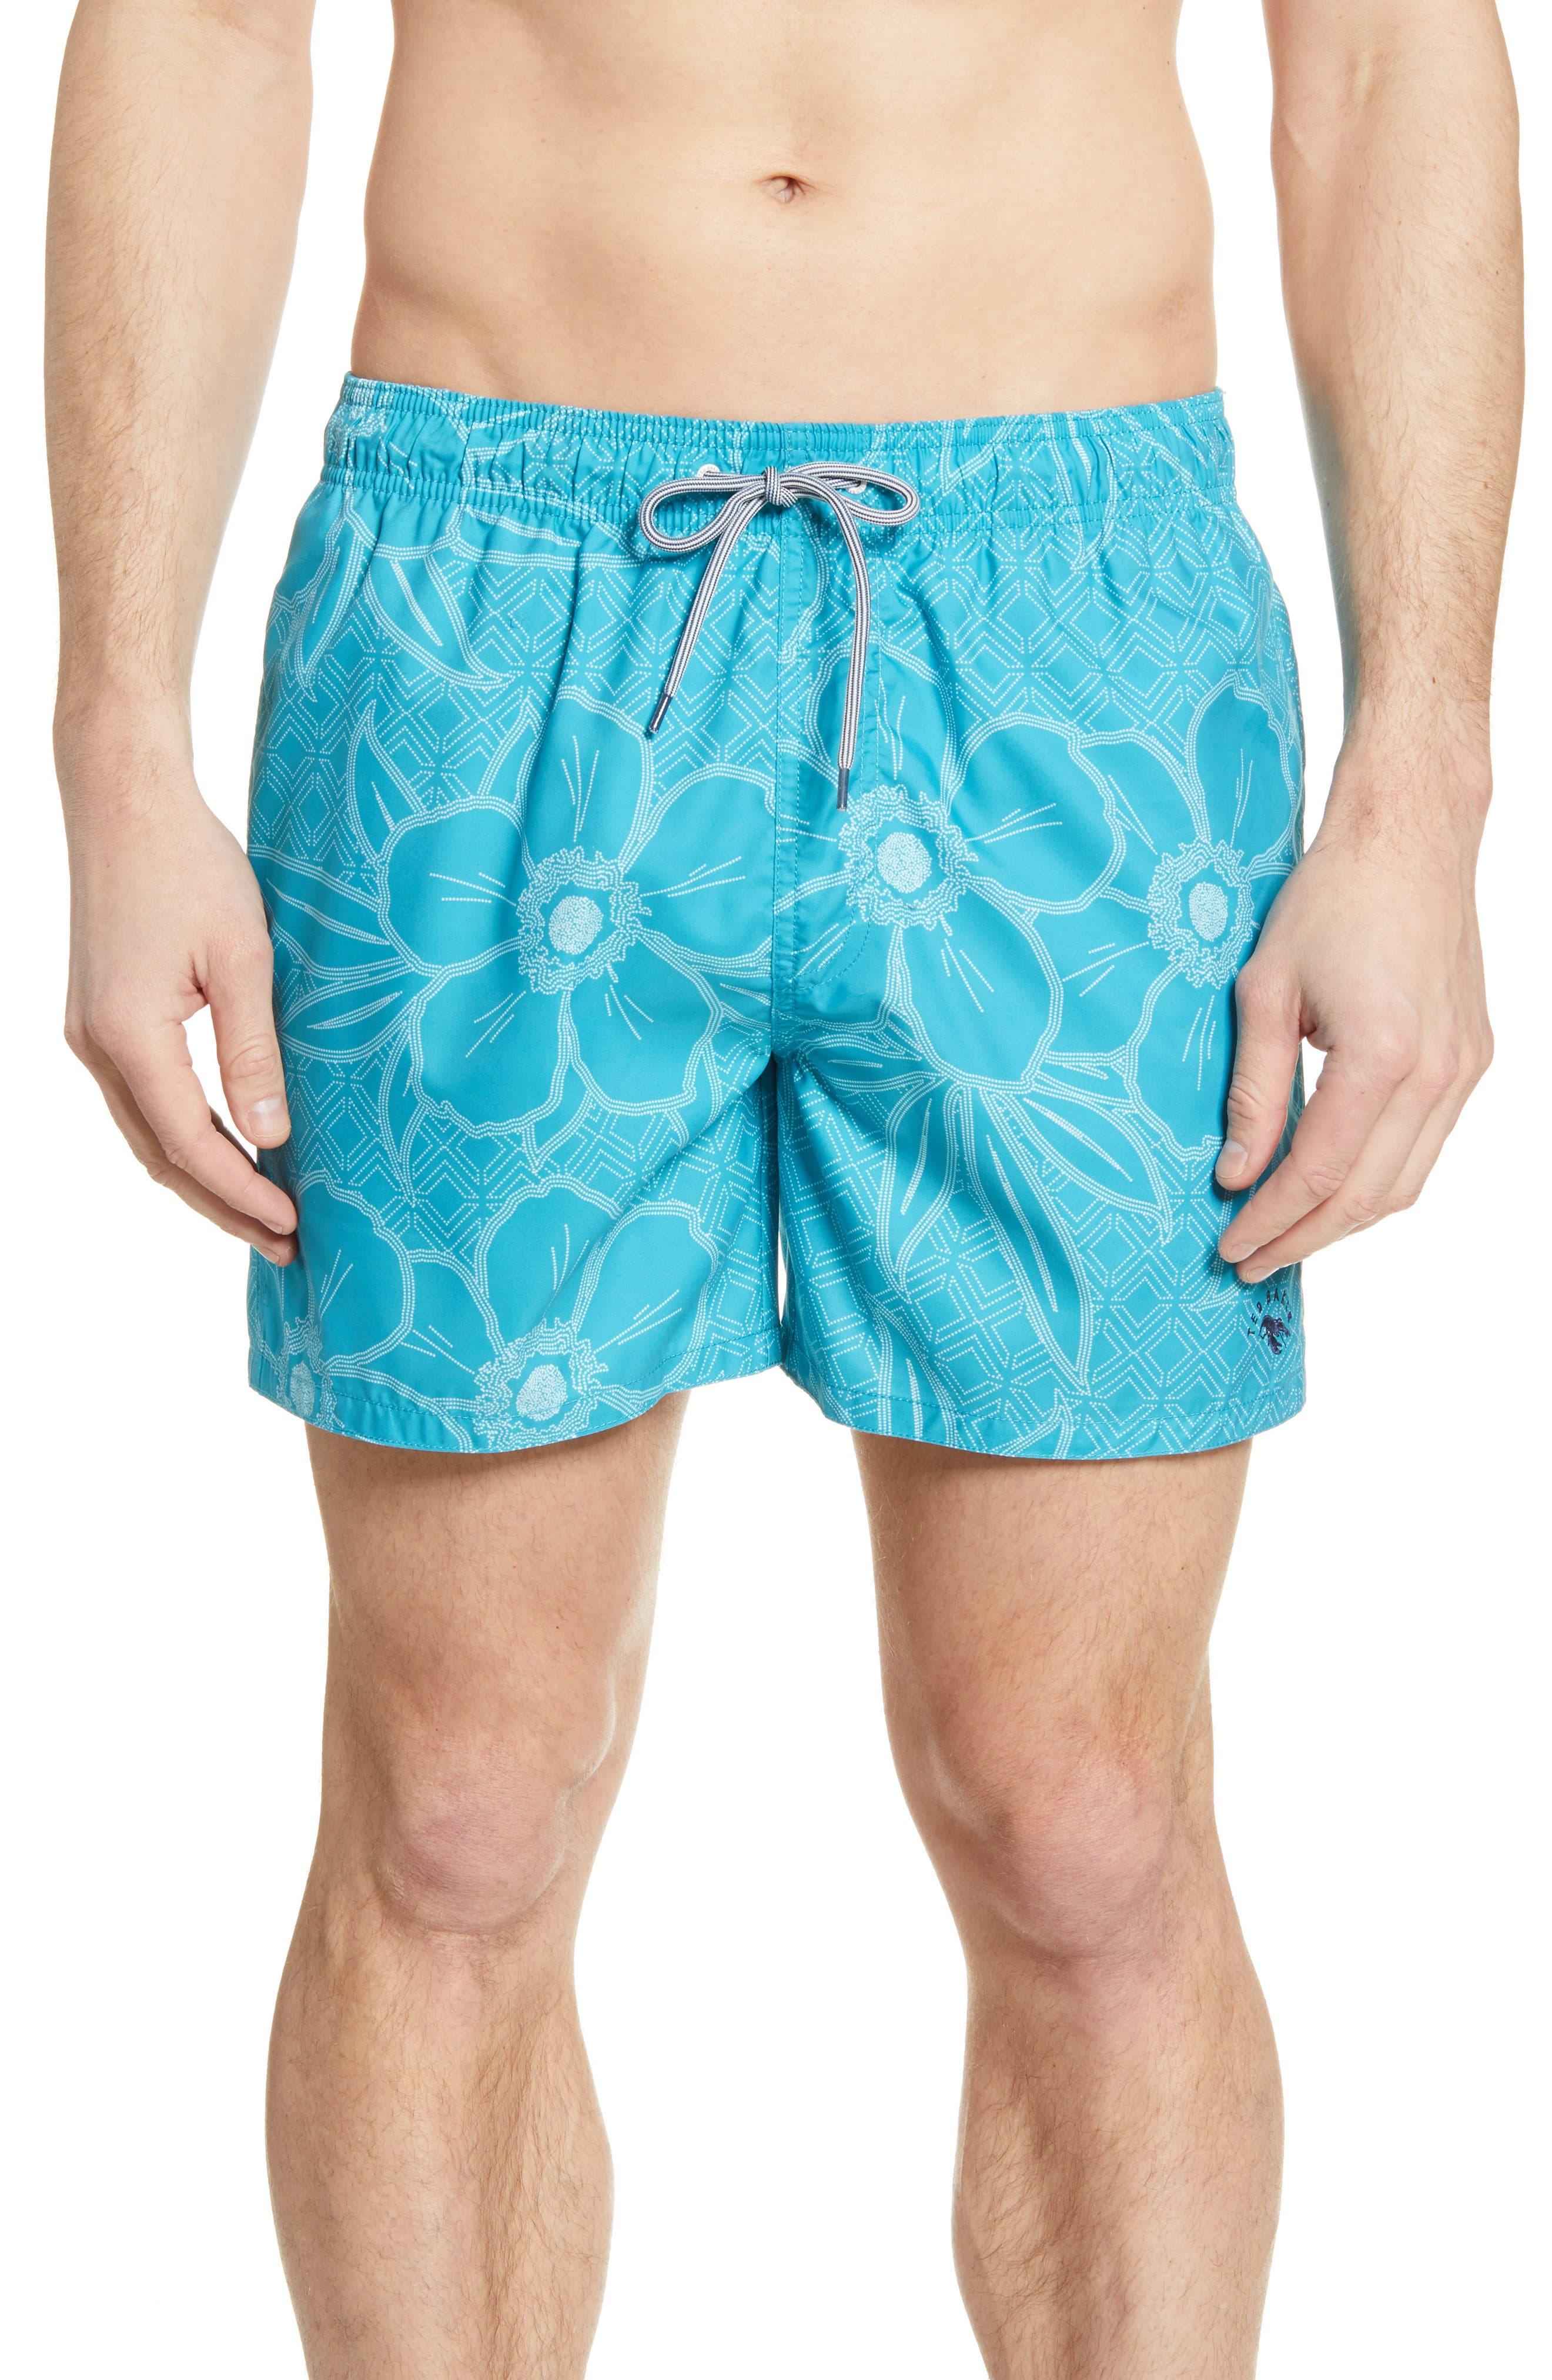 A stippled tropical print brings a vacay feeling to these drawstring-waist swim shorts that are ready for warm weather. Style Name: Ted Baker London Short Swim Trunks. Style Number: 6036954. Available in stores.